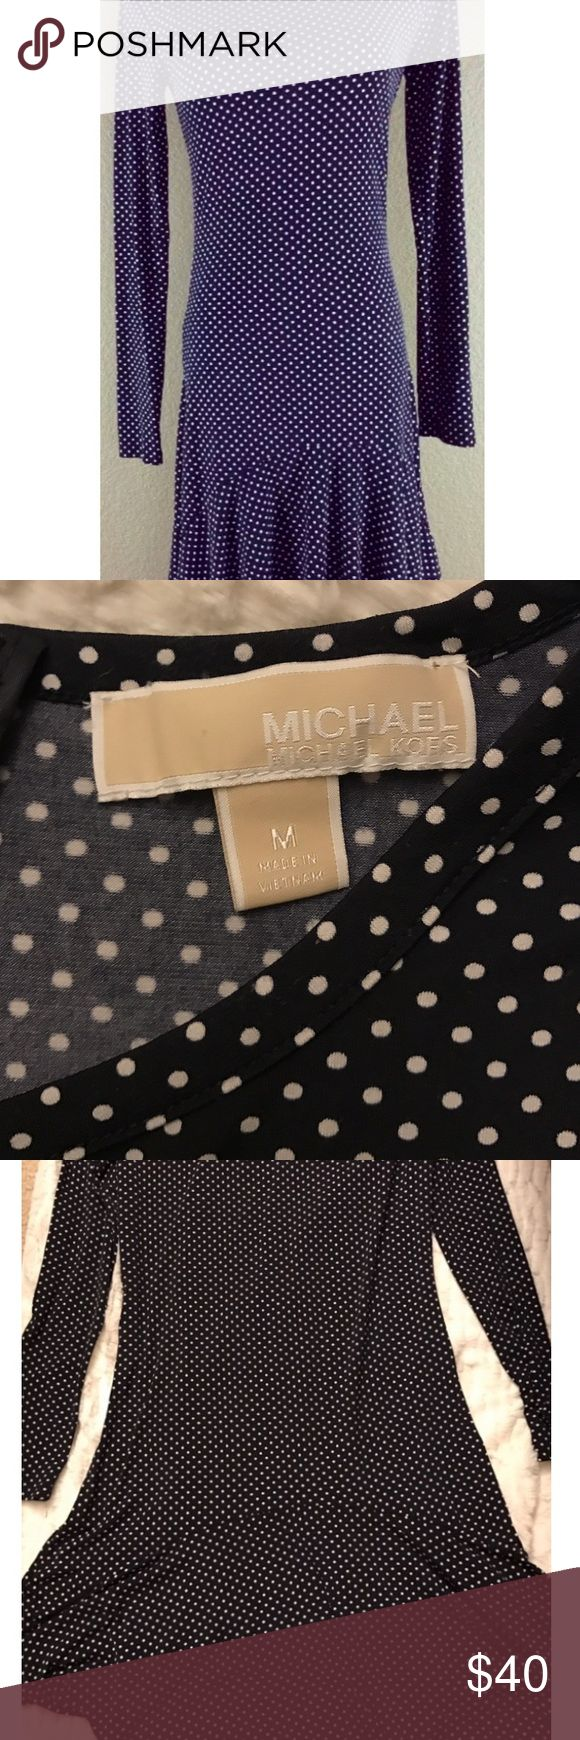 Michael Kors Navy Polka Dot Long Sleeve Dress Michael Kors navy and white polka dot long sleeve dress in a stretchy material. Size medium and only worn once! The bottom of the dress is asymmetrical and flowy! Michael Kors Dresses Asymmetrical